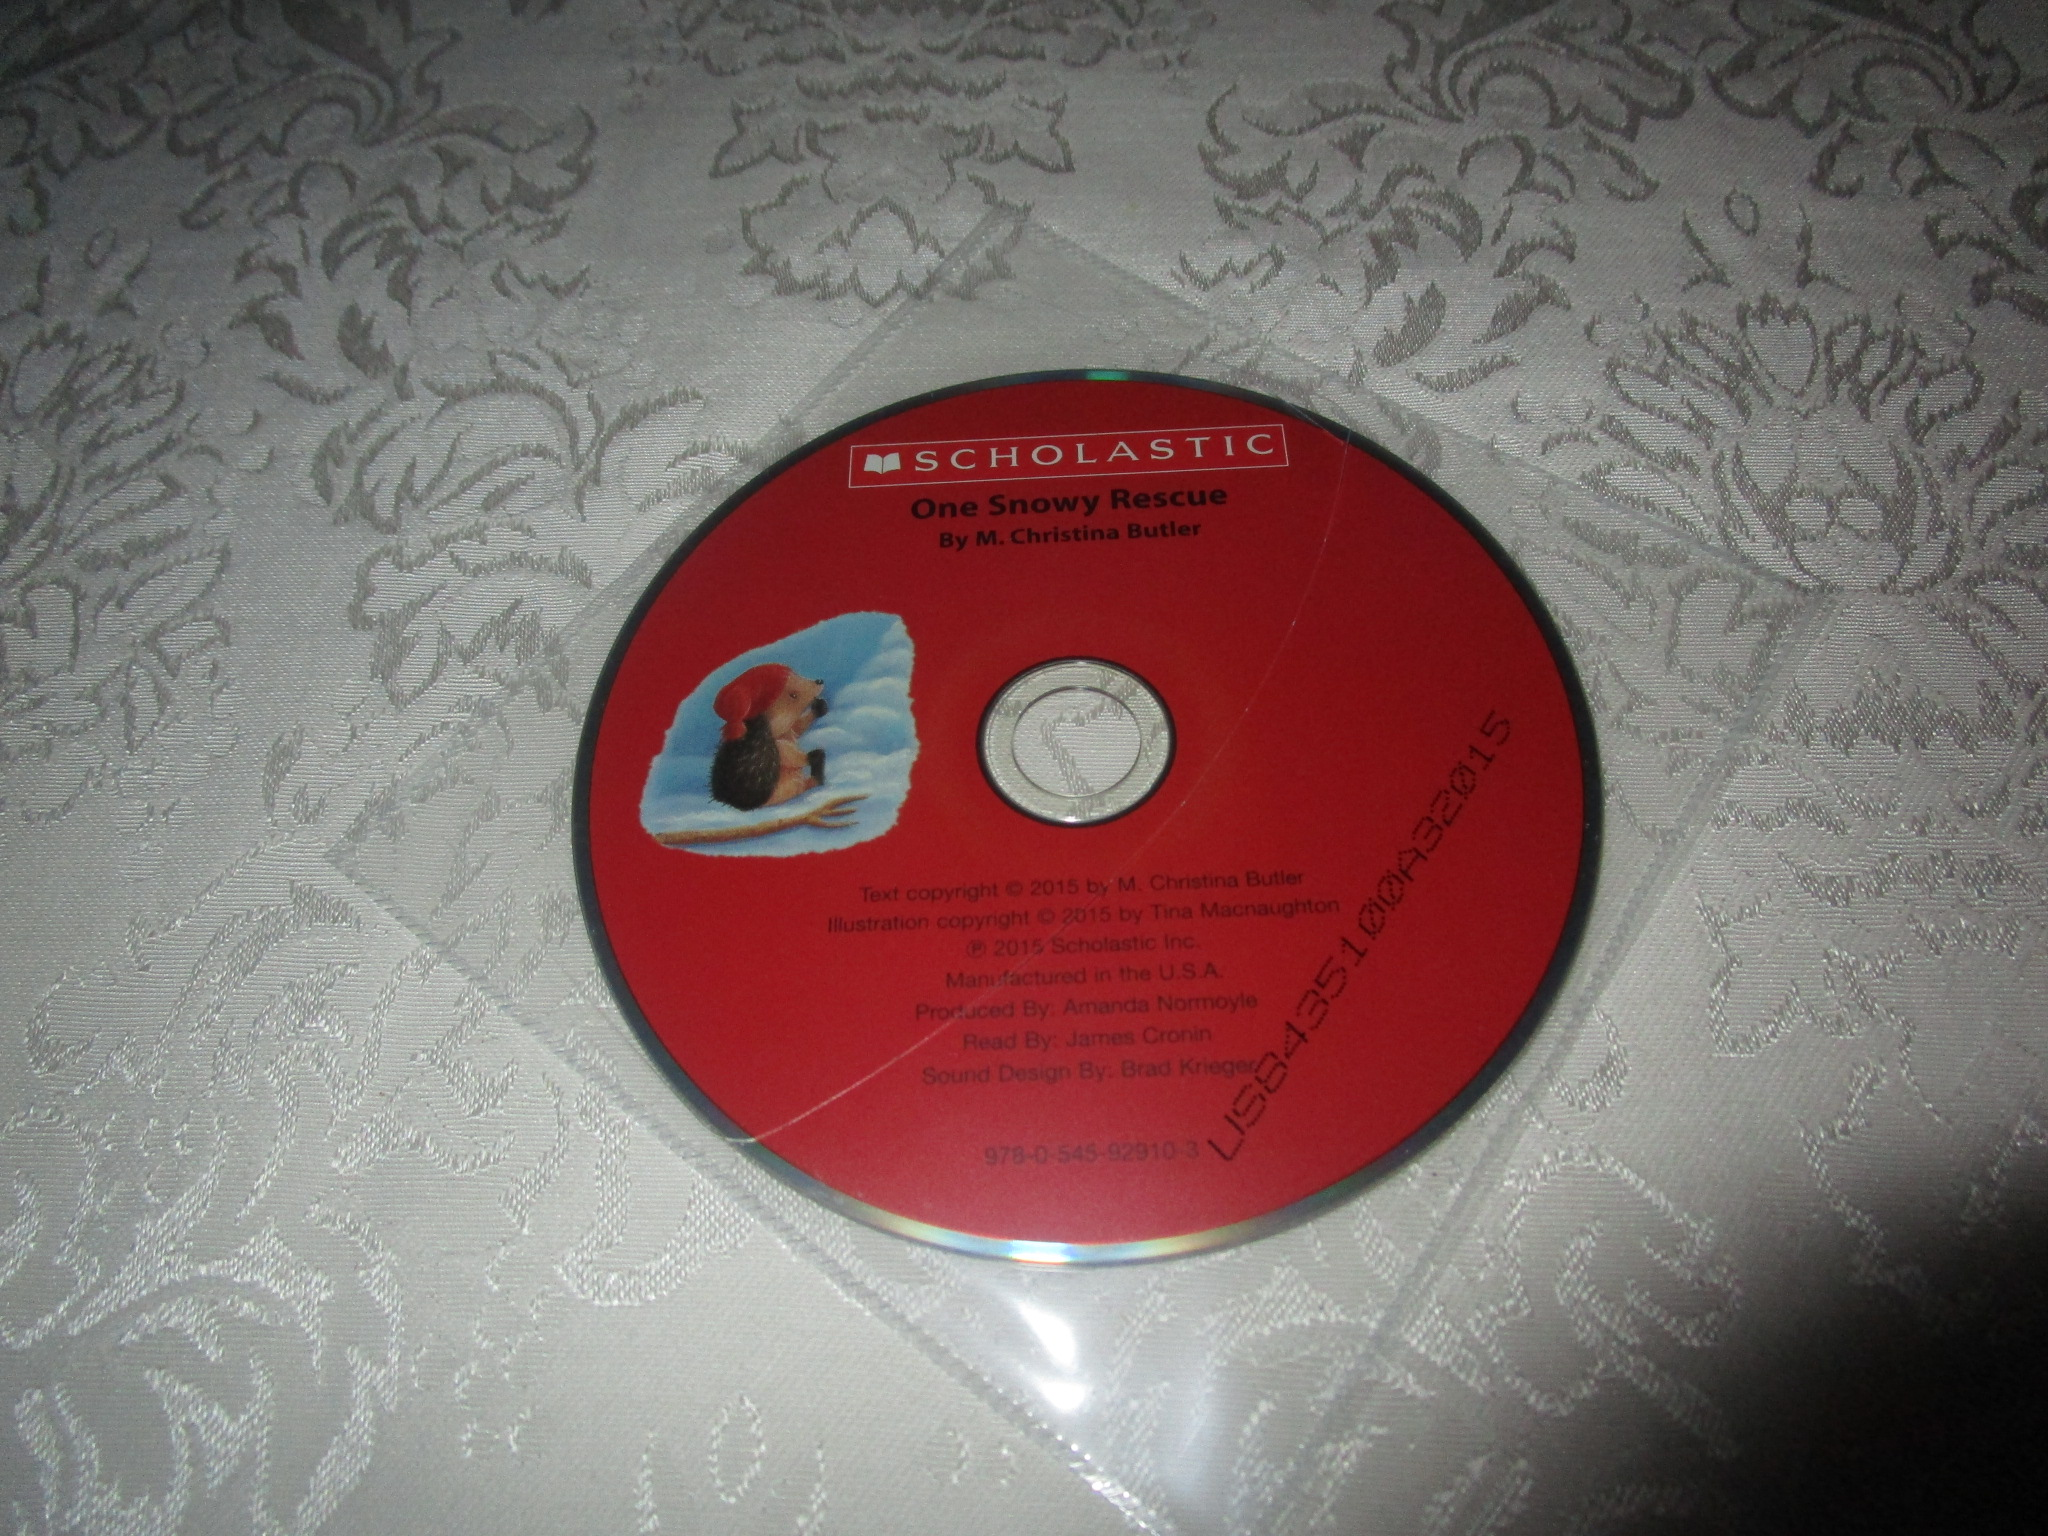 One Snowy Rescue M. Christina Butler Audio CD ONLY Brand New